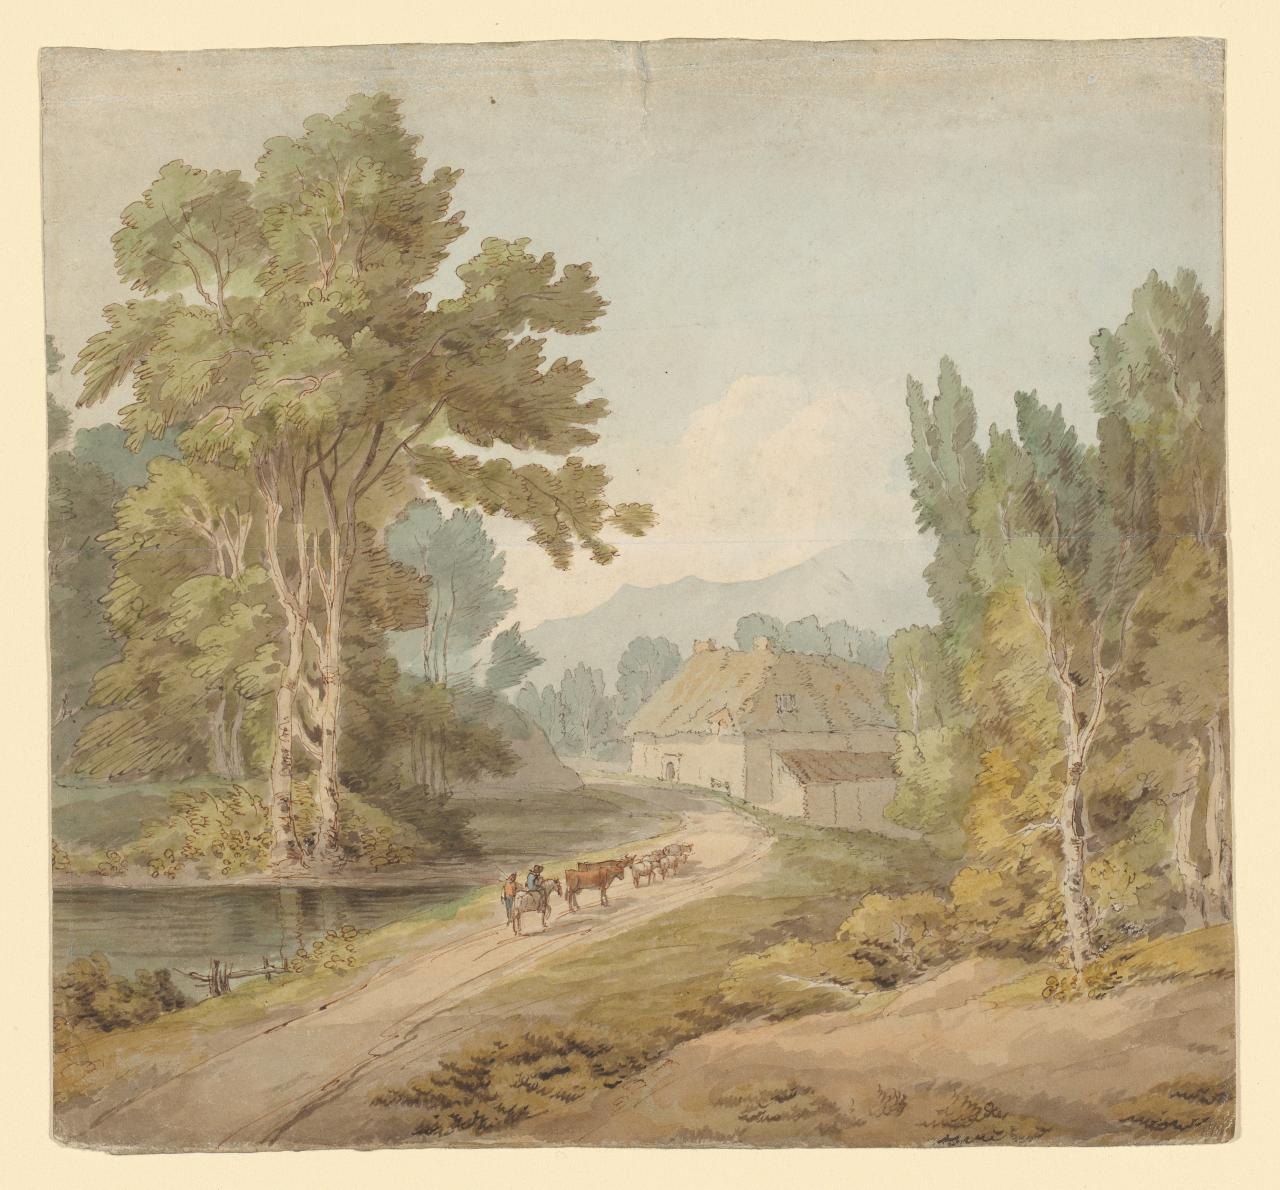 Landscape with cattle on a road